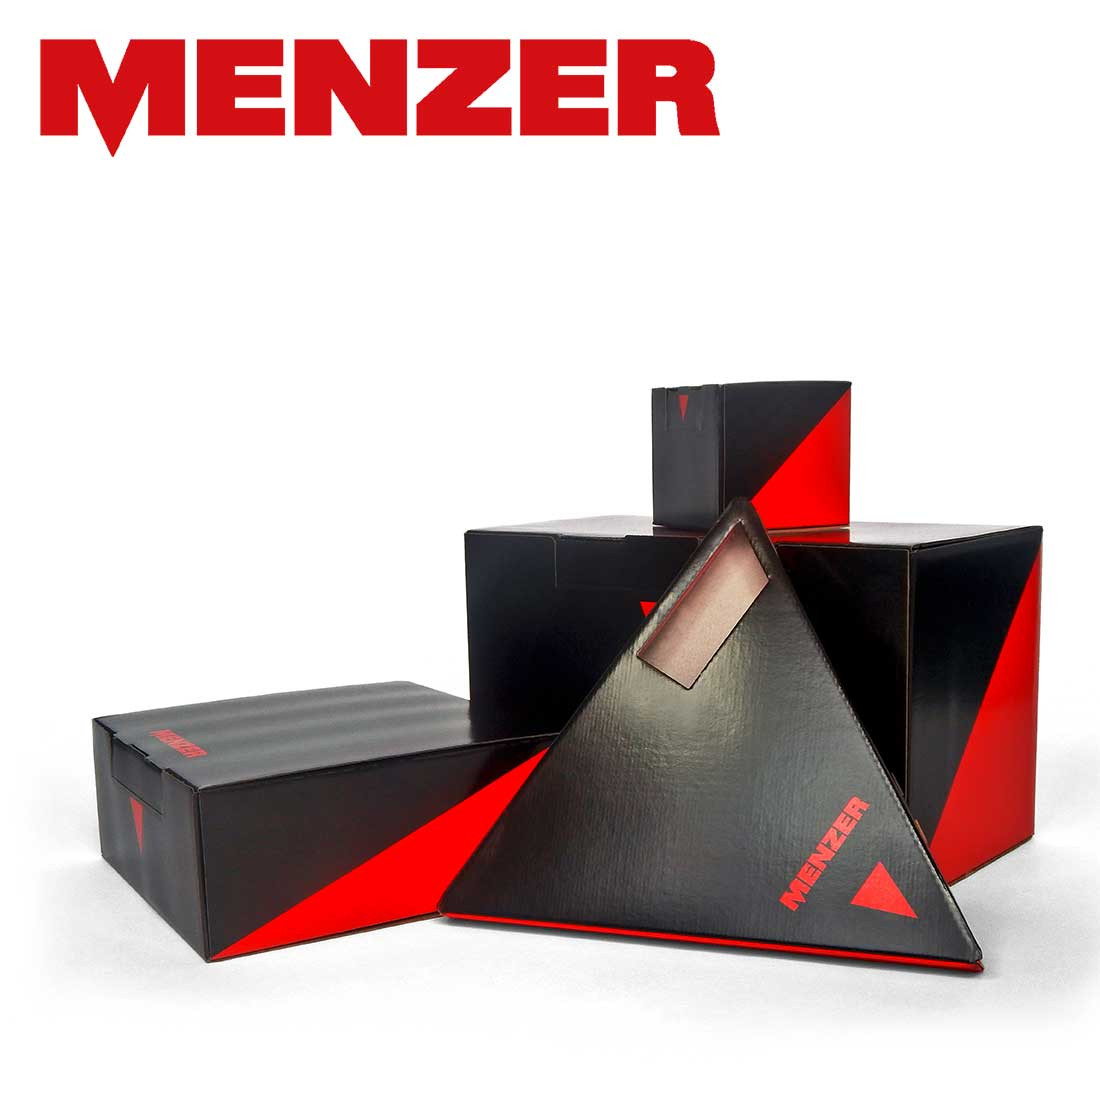 Emballage MENZER original